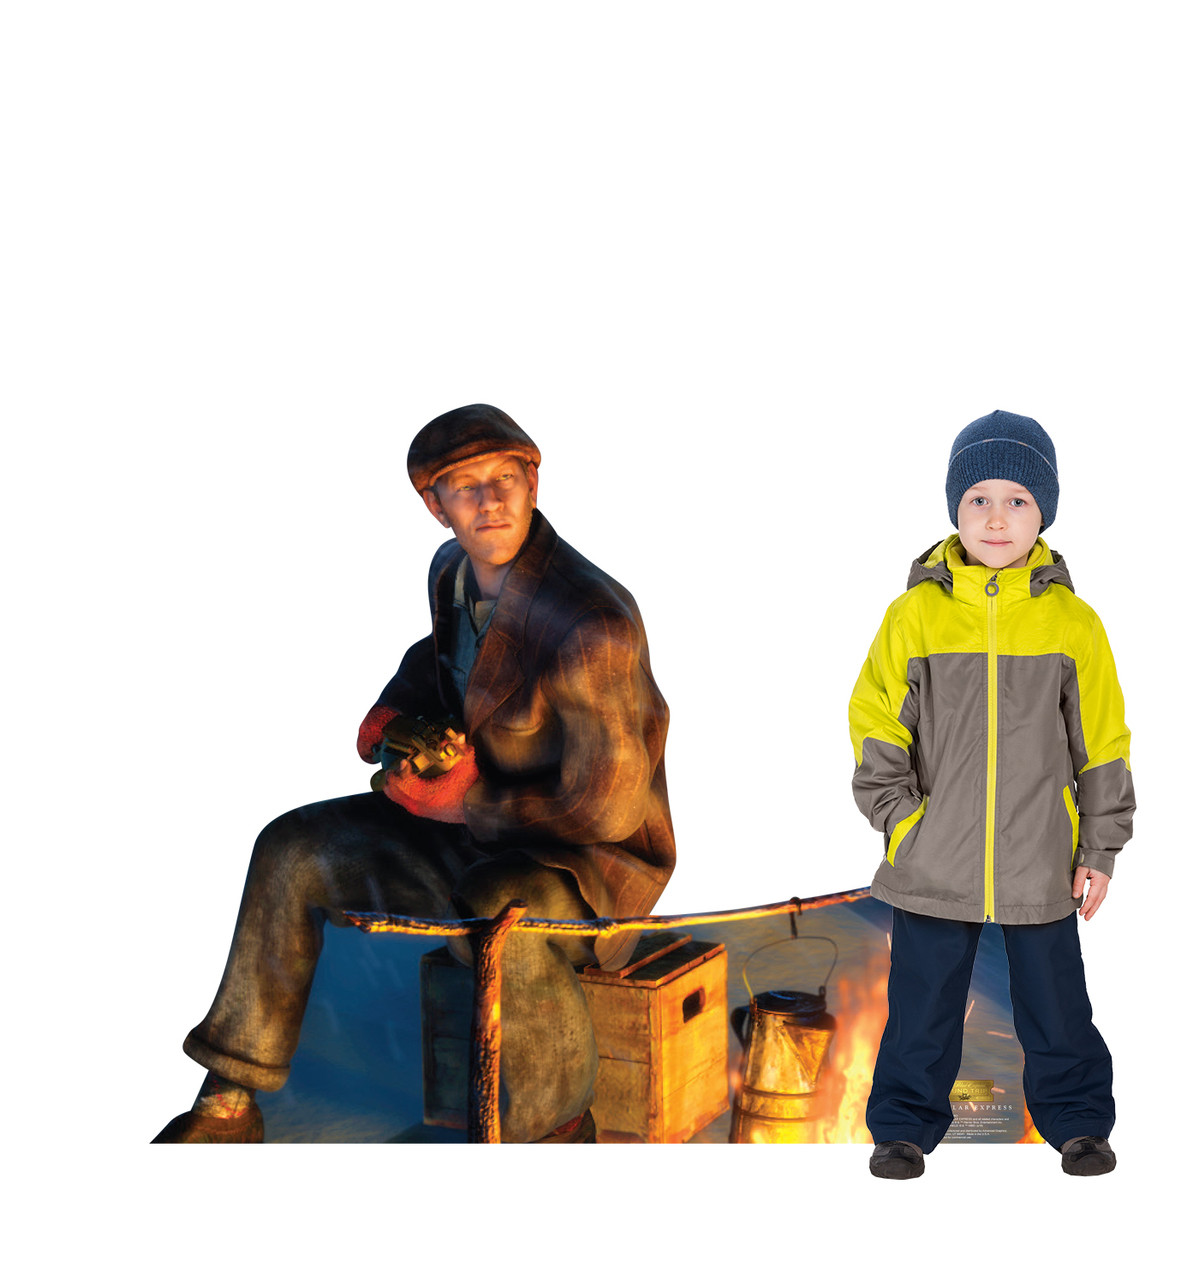 Life-size cardboard standee of the Hobo from The Polar Express with model.